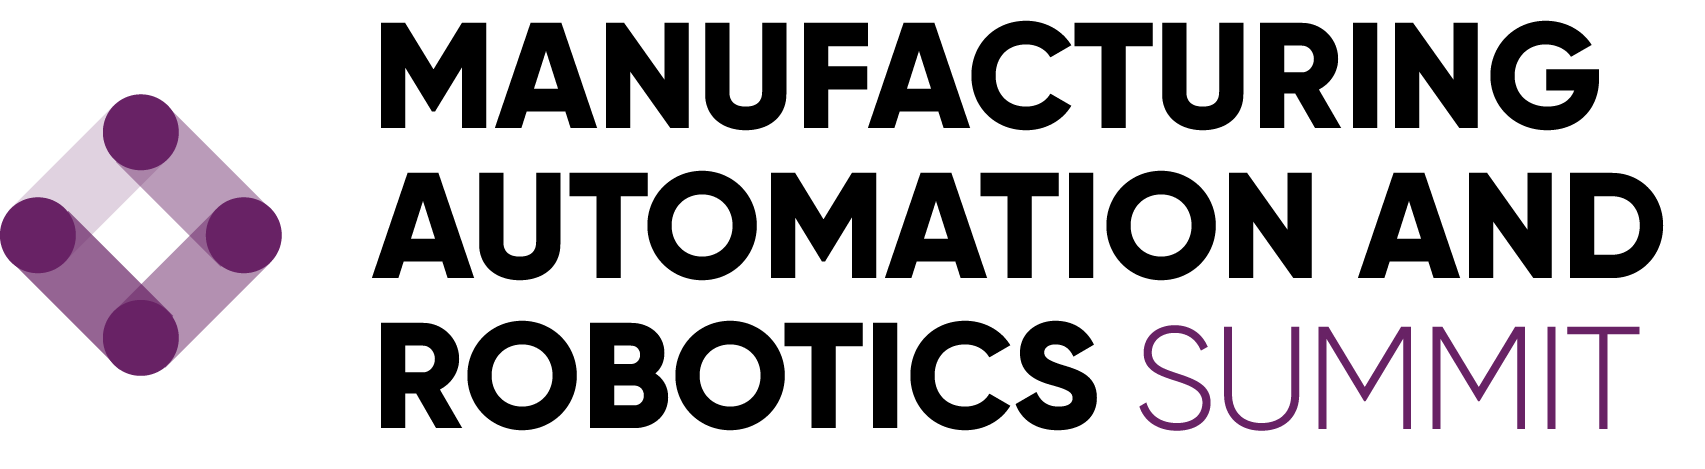 Manufacturing Automation & Robotics Summit